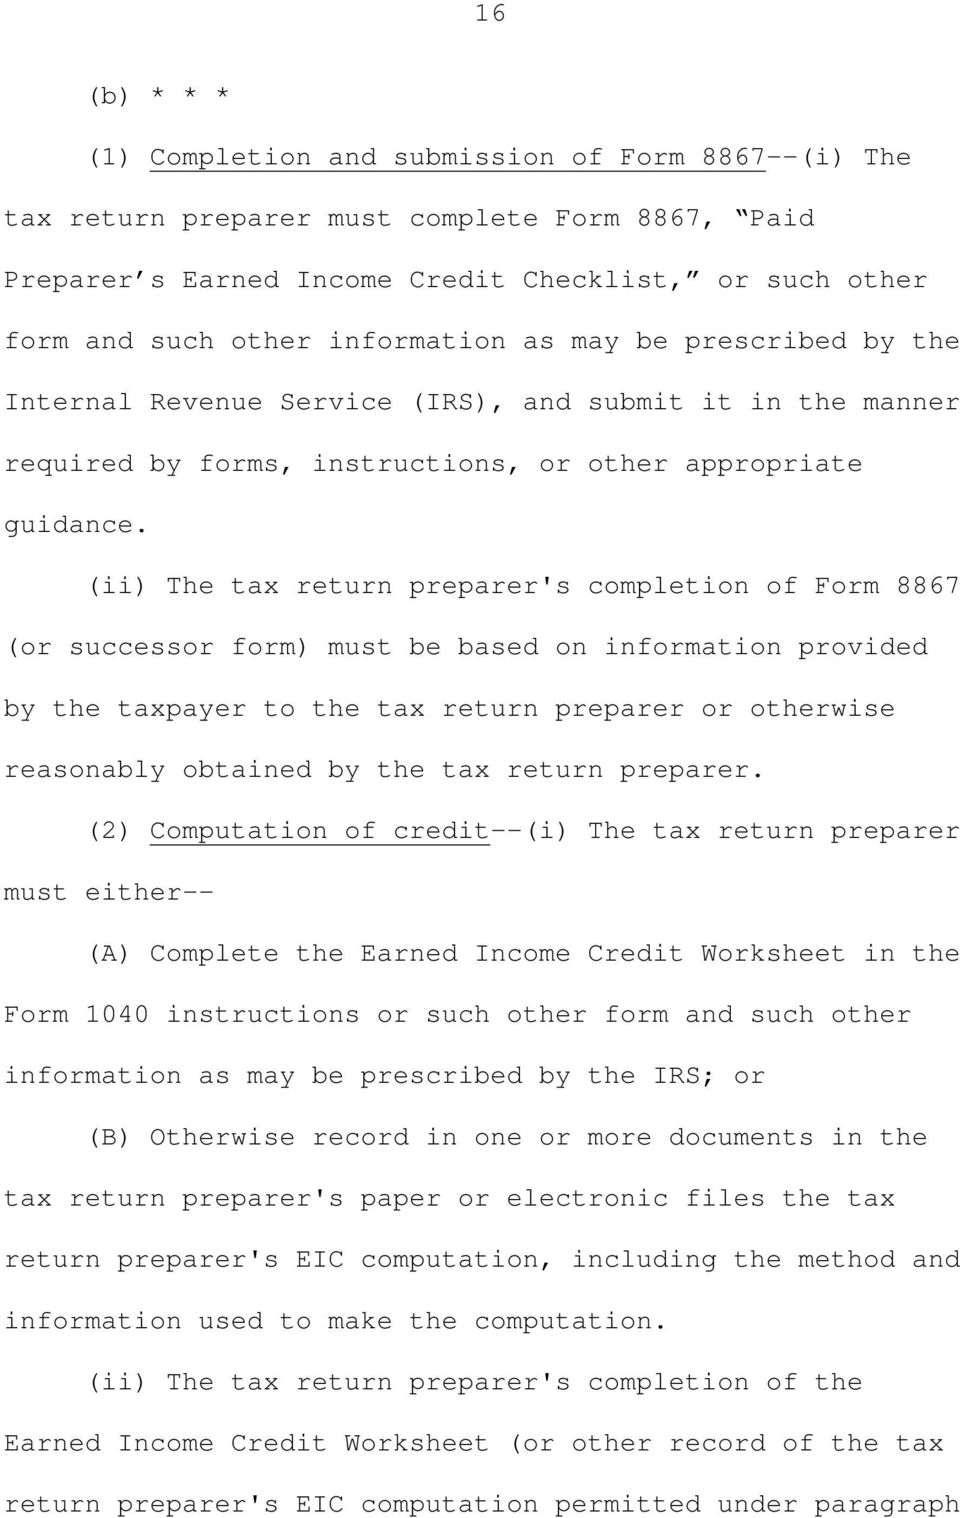 (ii) The tax return preparer's completion of Form 8867 (or successor form) must be based on information provided by the taxpayer to the tax return preparer or otherwise reasonably obtained by the tax